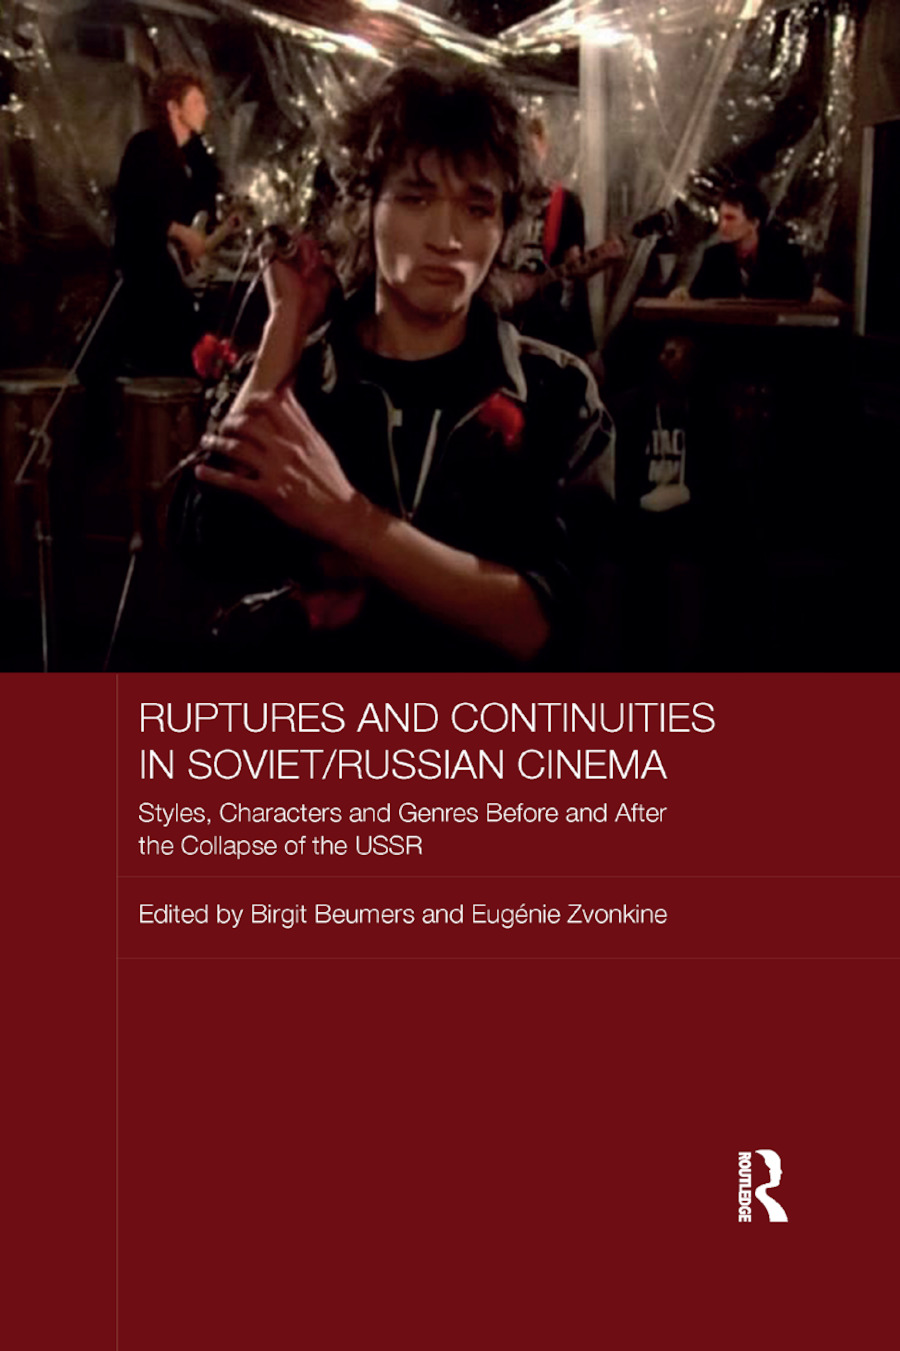 Ruptures and Continuities in Soviet/Russian Cinema